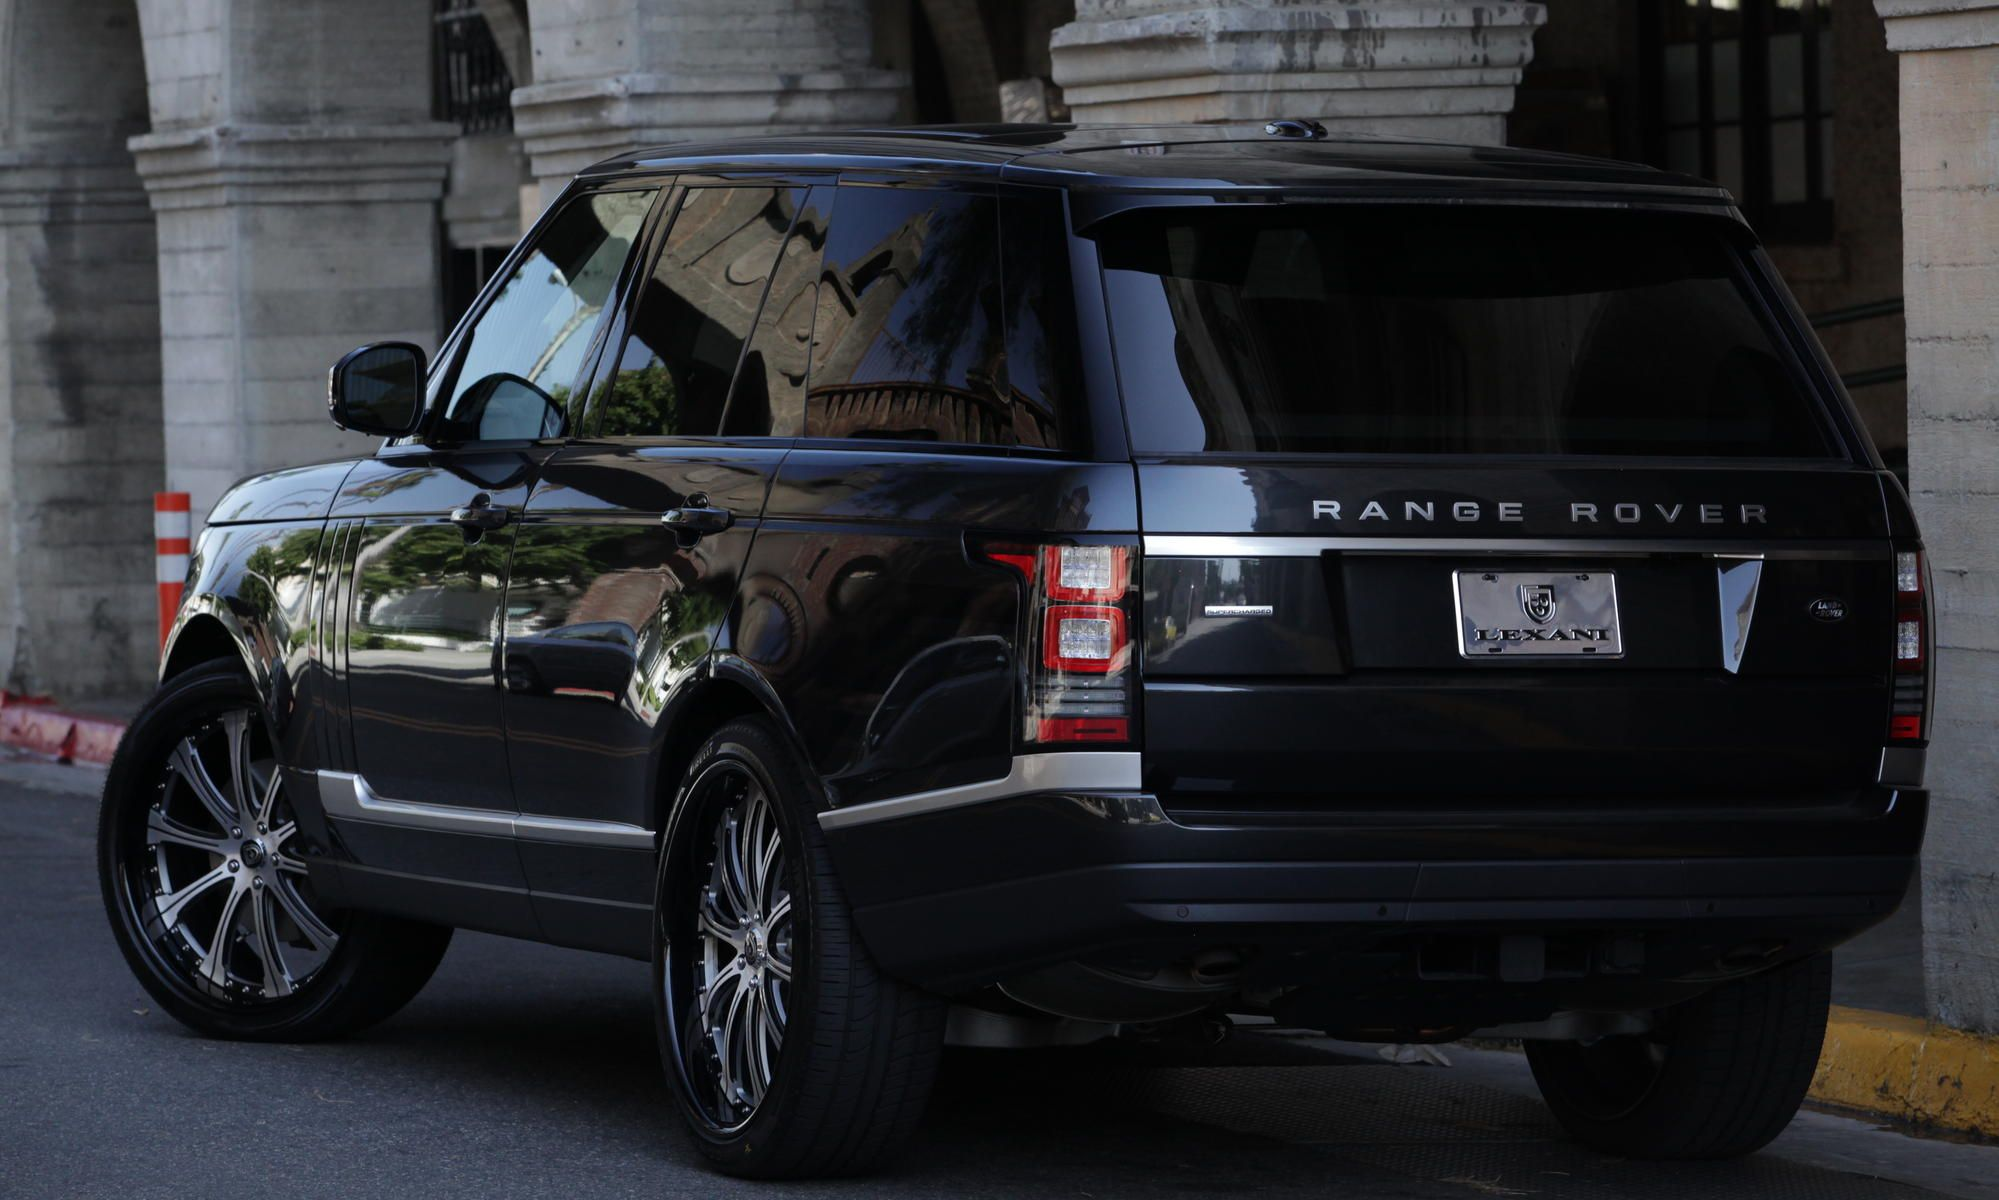 The 2013 Range Rover with machine face and black LR 707 24